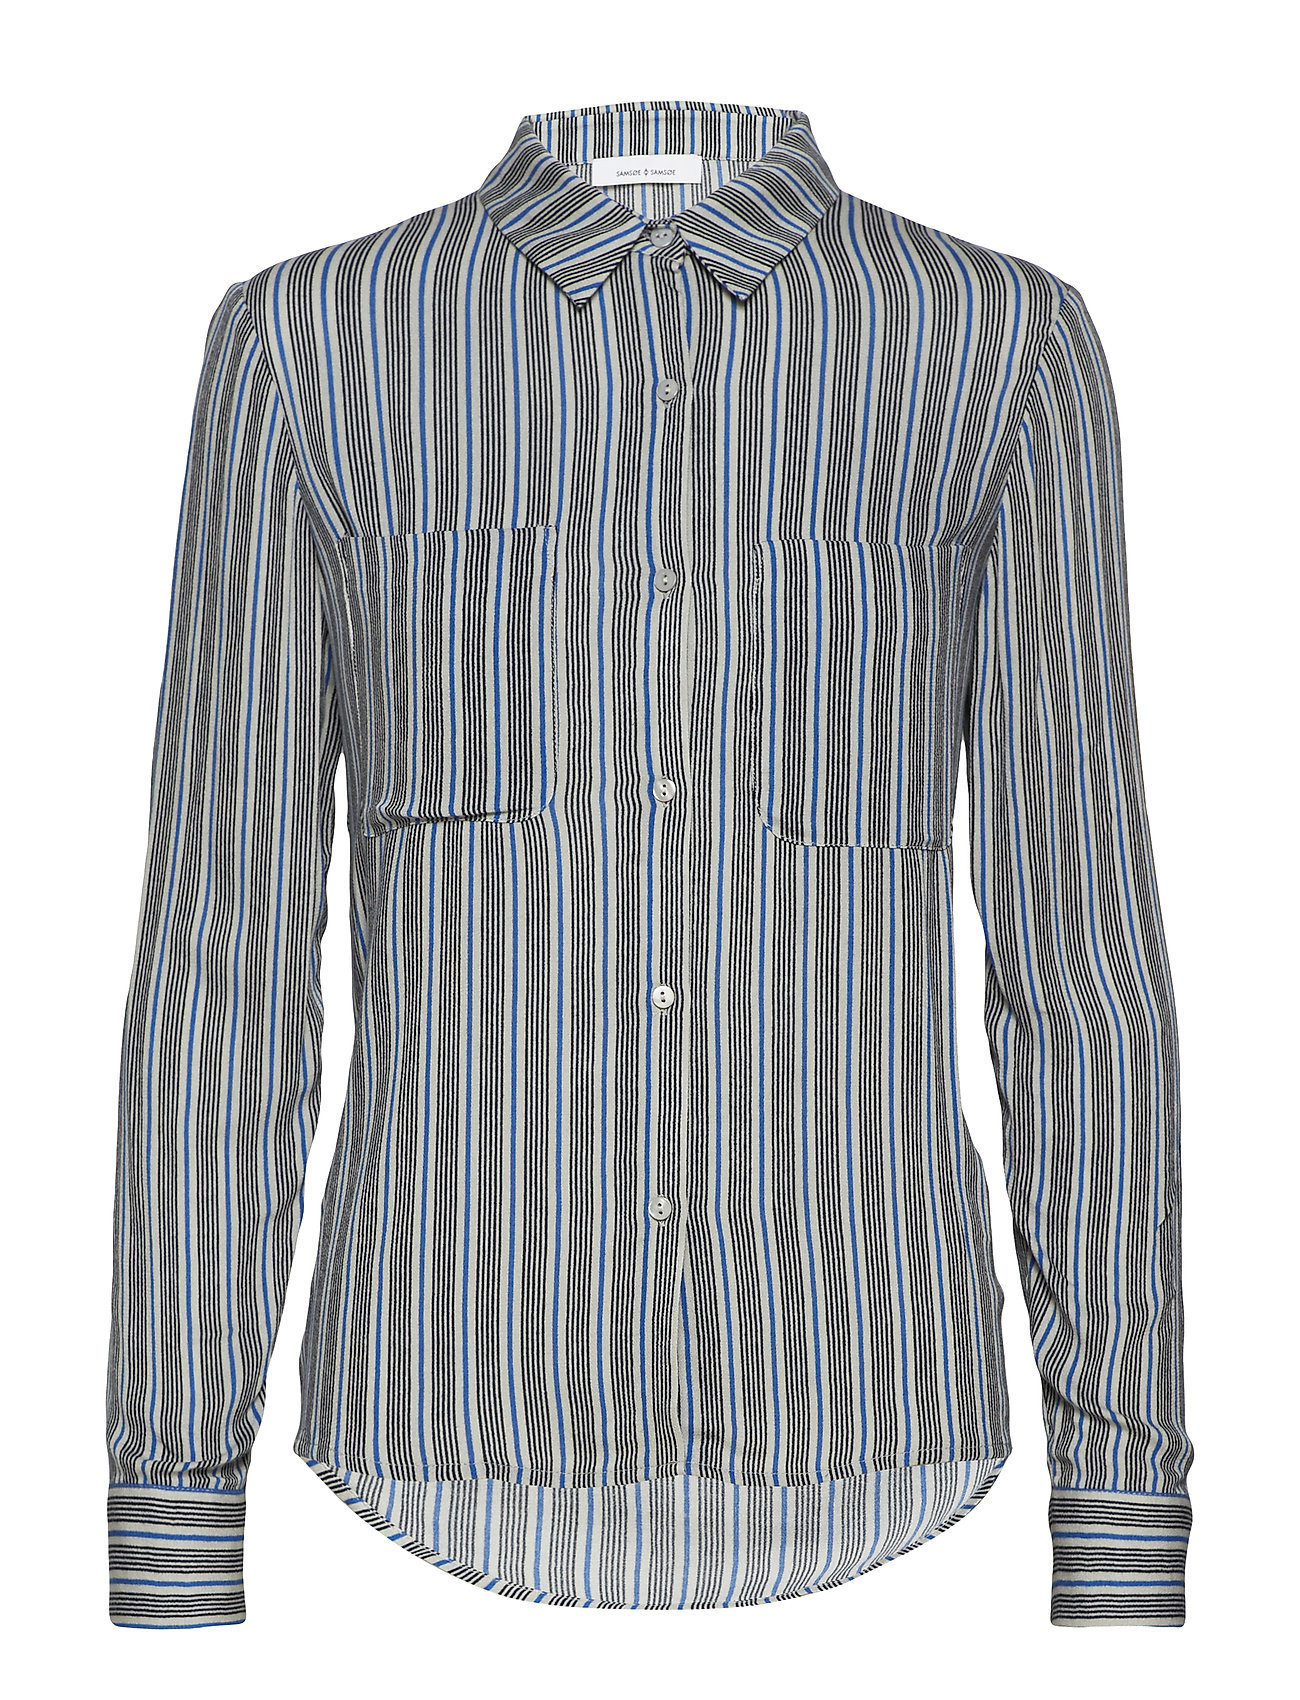 Samsøe & Samsøe Milly shirt aop 7201 - SEA ST